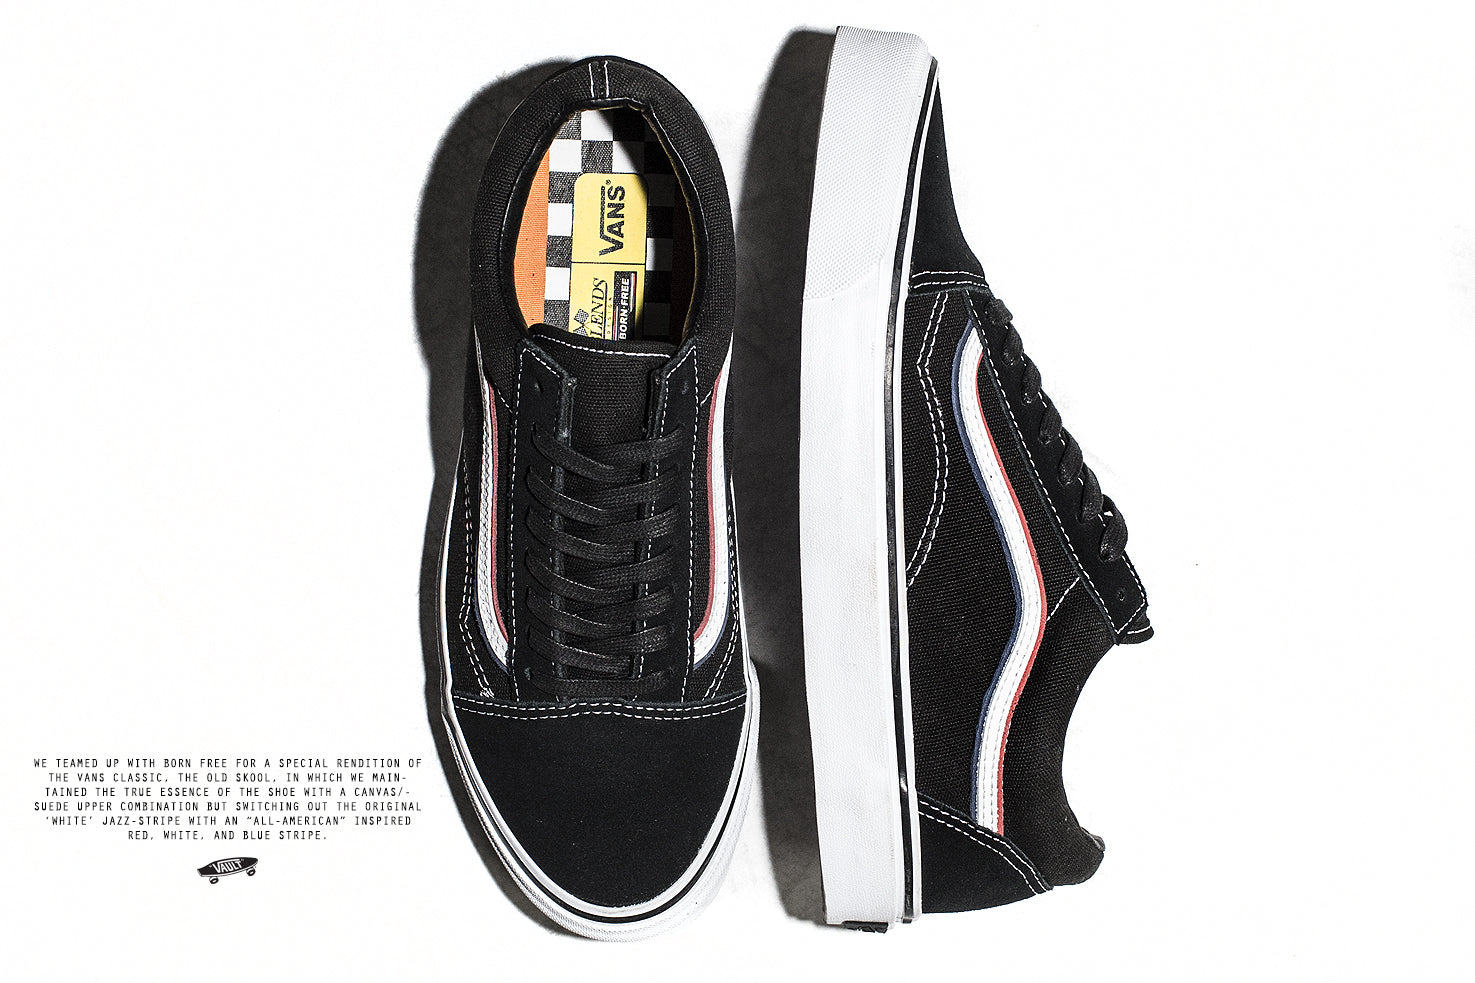 Blends x Born Free x Vans Vault OG Old Skool LX